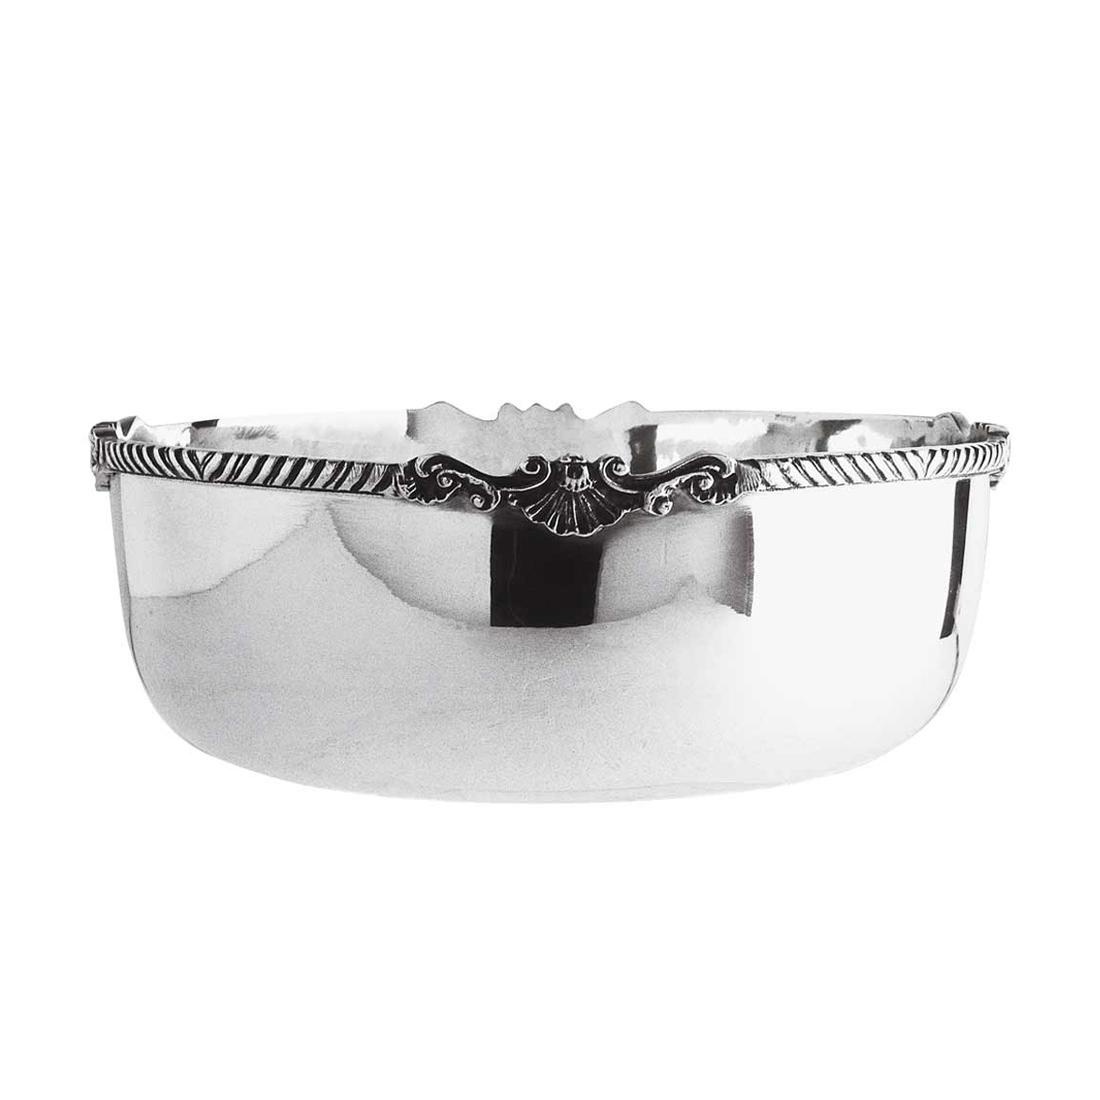 "10"" Silver Plated Salad Bowl in Royal"